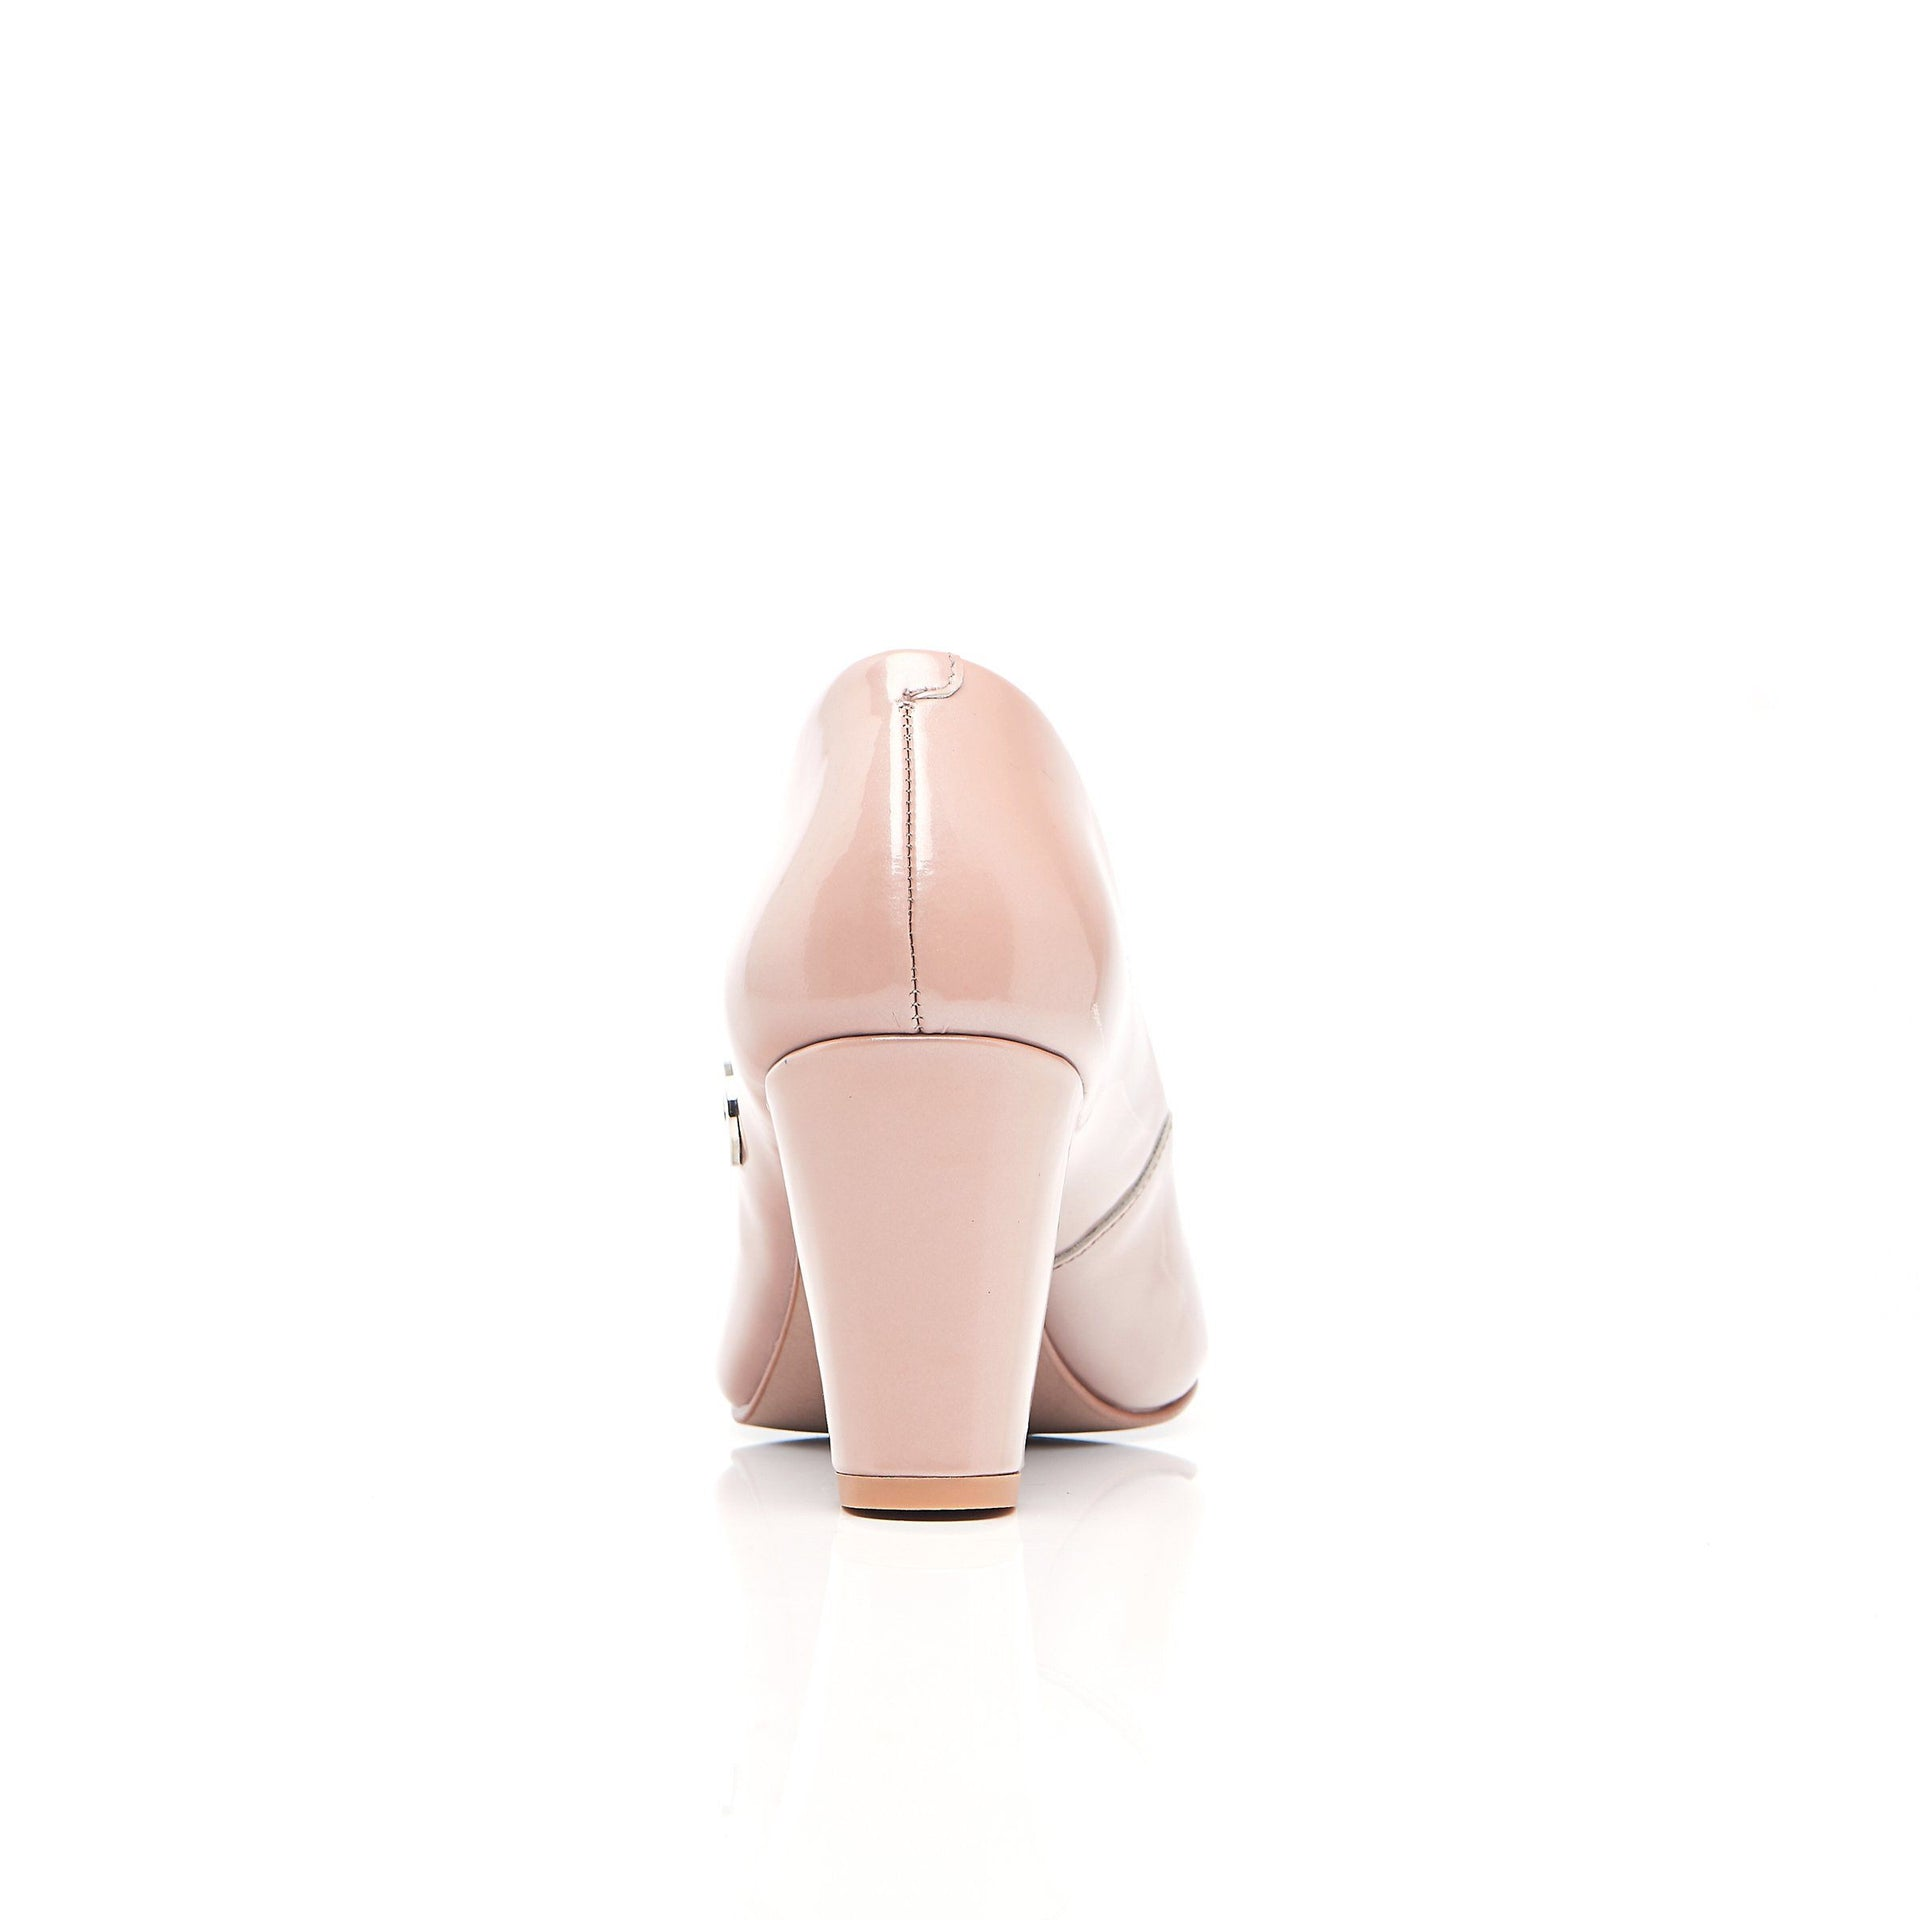 Stand Tall Sister - Block Heels - Blush Leather - Shoes by Shaherazad